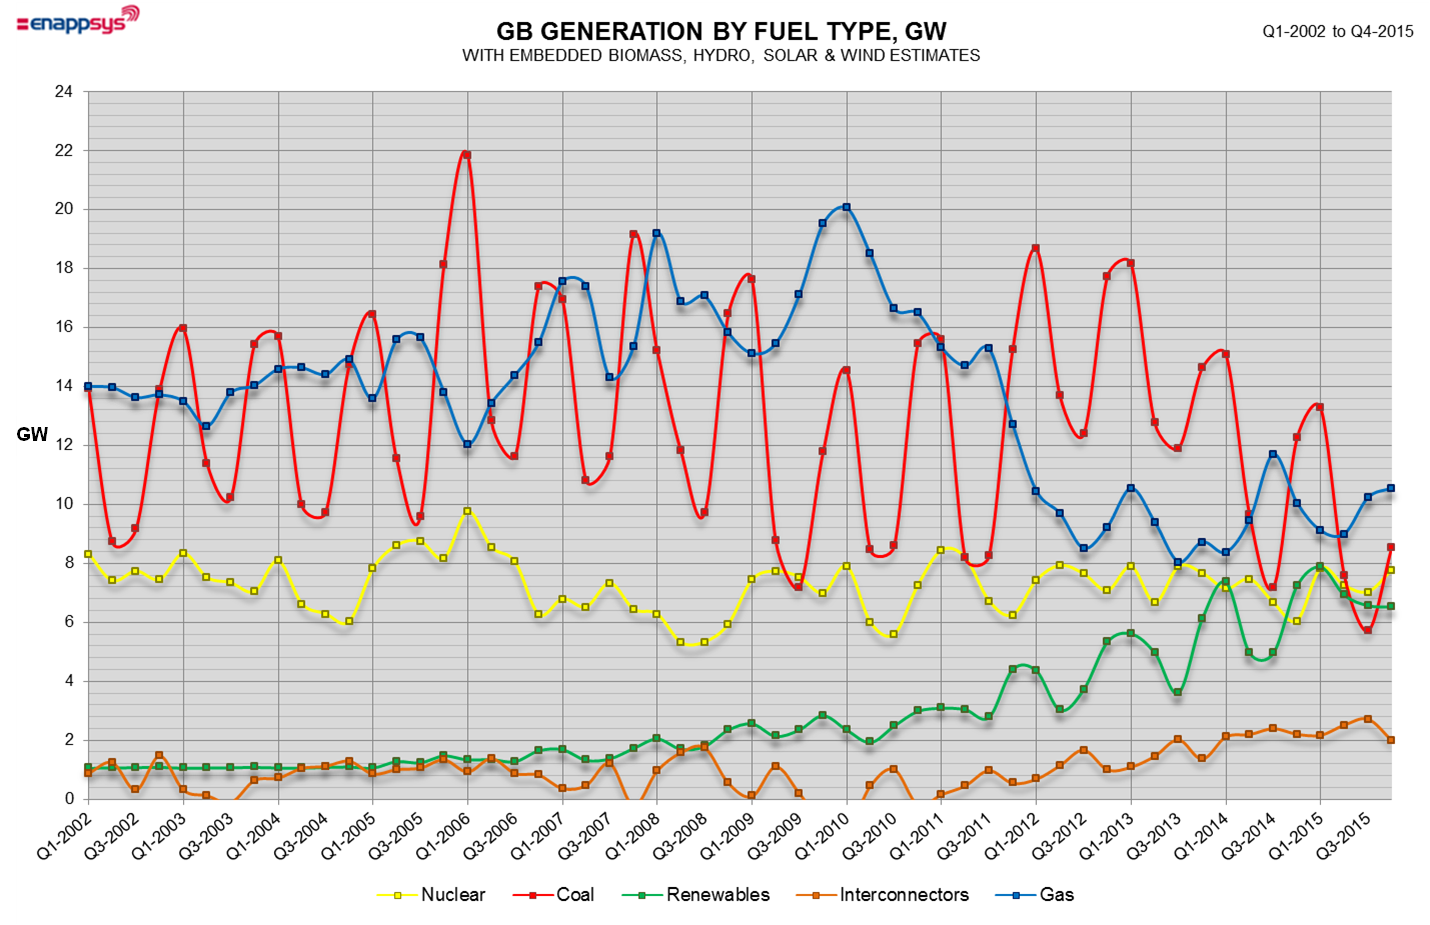 Graph of GB generation by fuel type